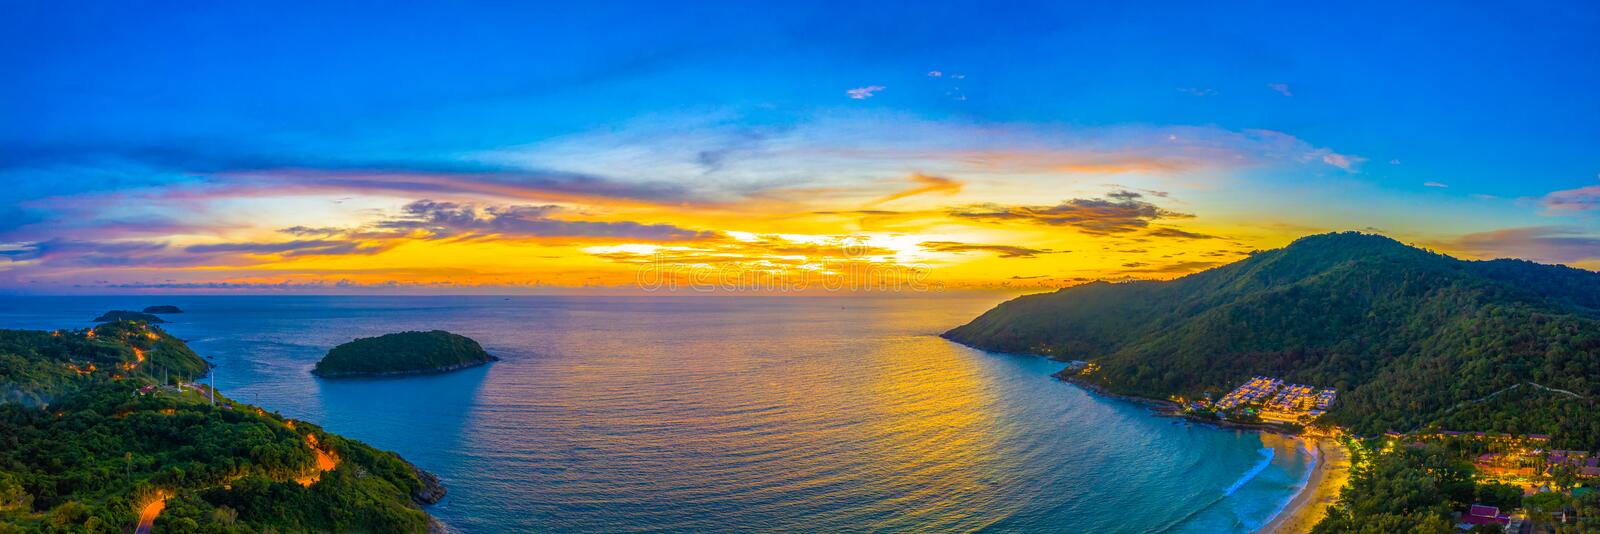 Aerial view sunset above Nai Harn beach. Nai Harn beach is a famouse landmark and popular sunset viewpoint of Phuket Thailand stock photography